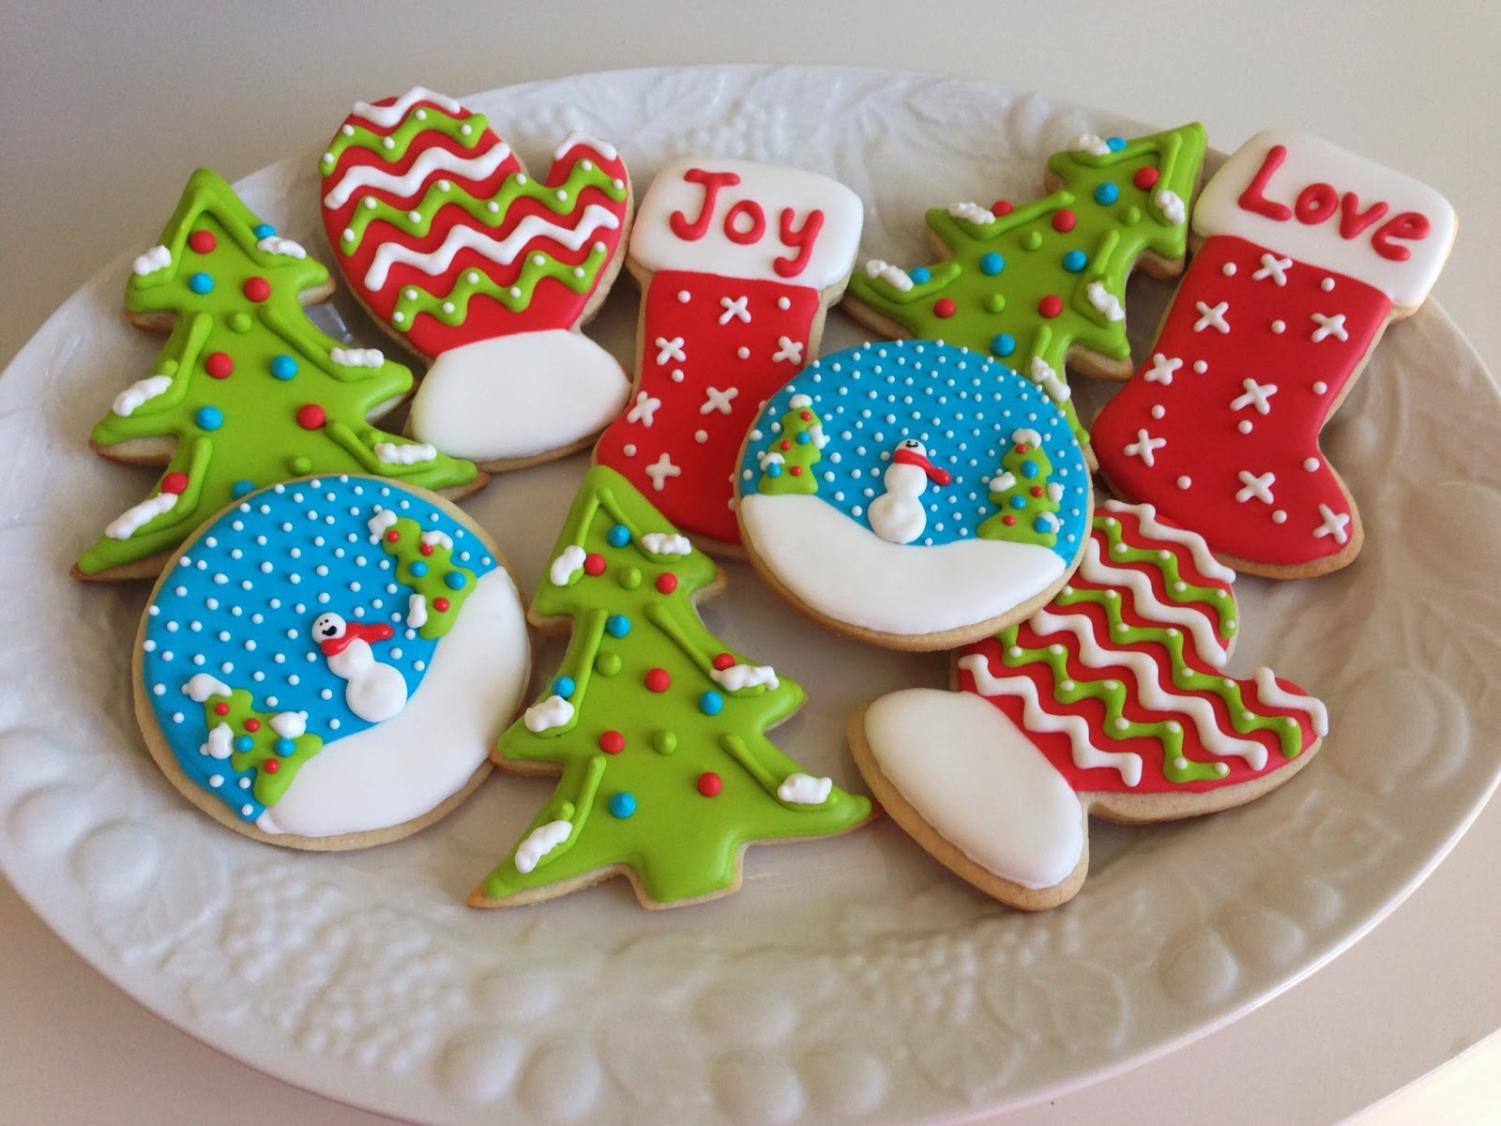 Sugar+cookies+can+become+works+of+art+with+royal+icing.++